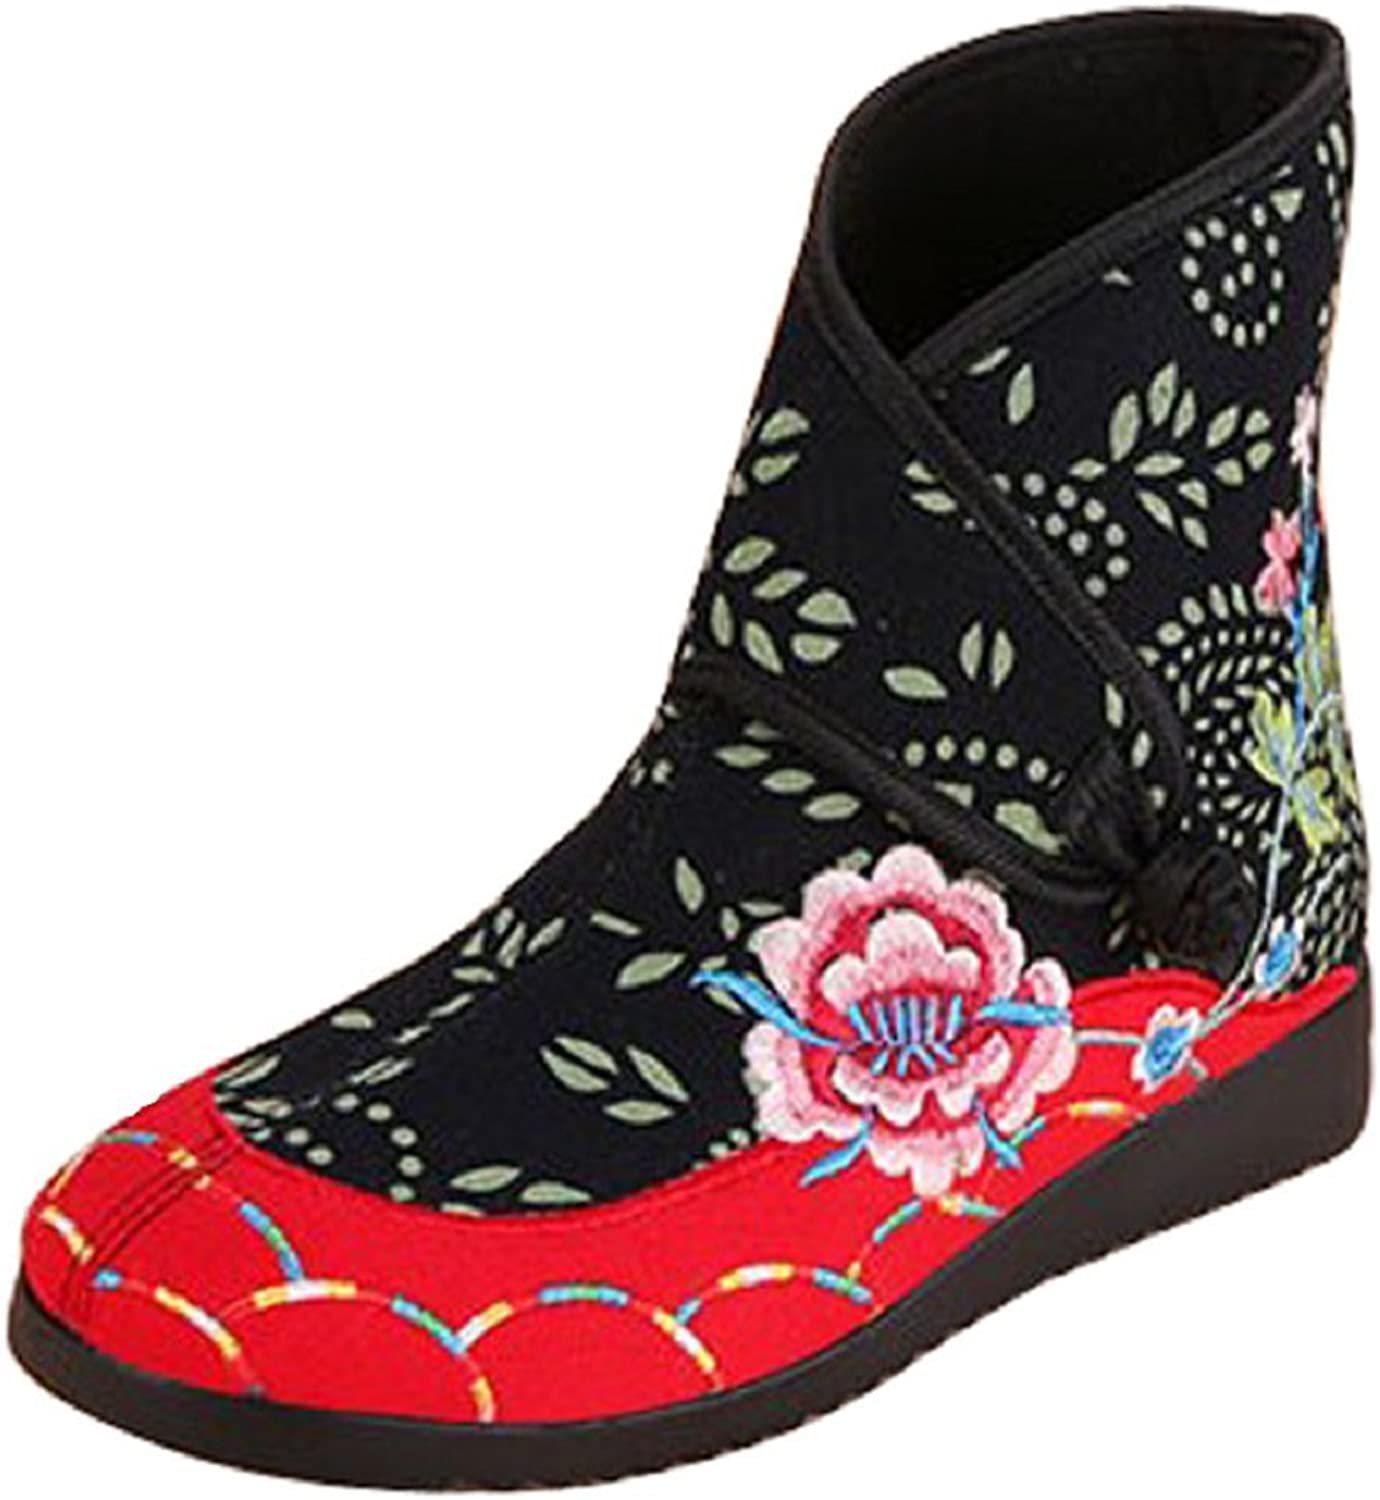 Tianrui Crown Women and Ladies The Patchwork Embroidery Winter Warm Ankle Boots shoes